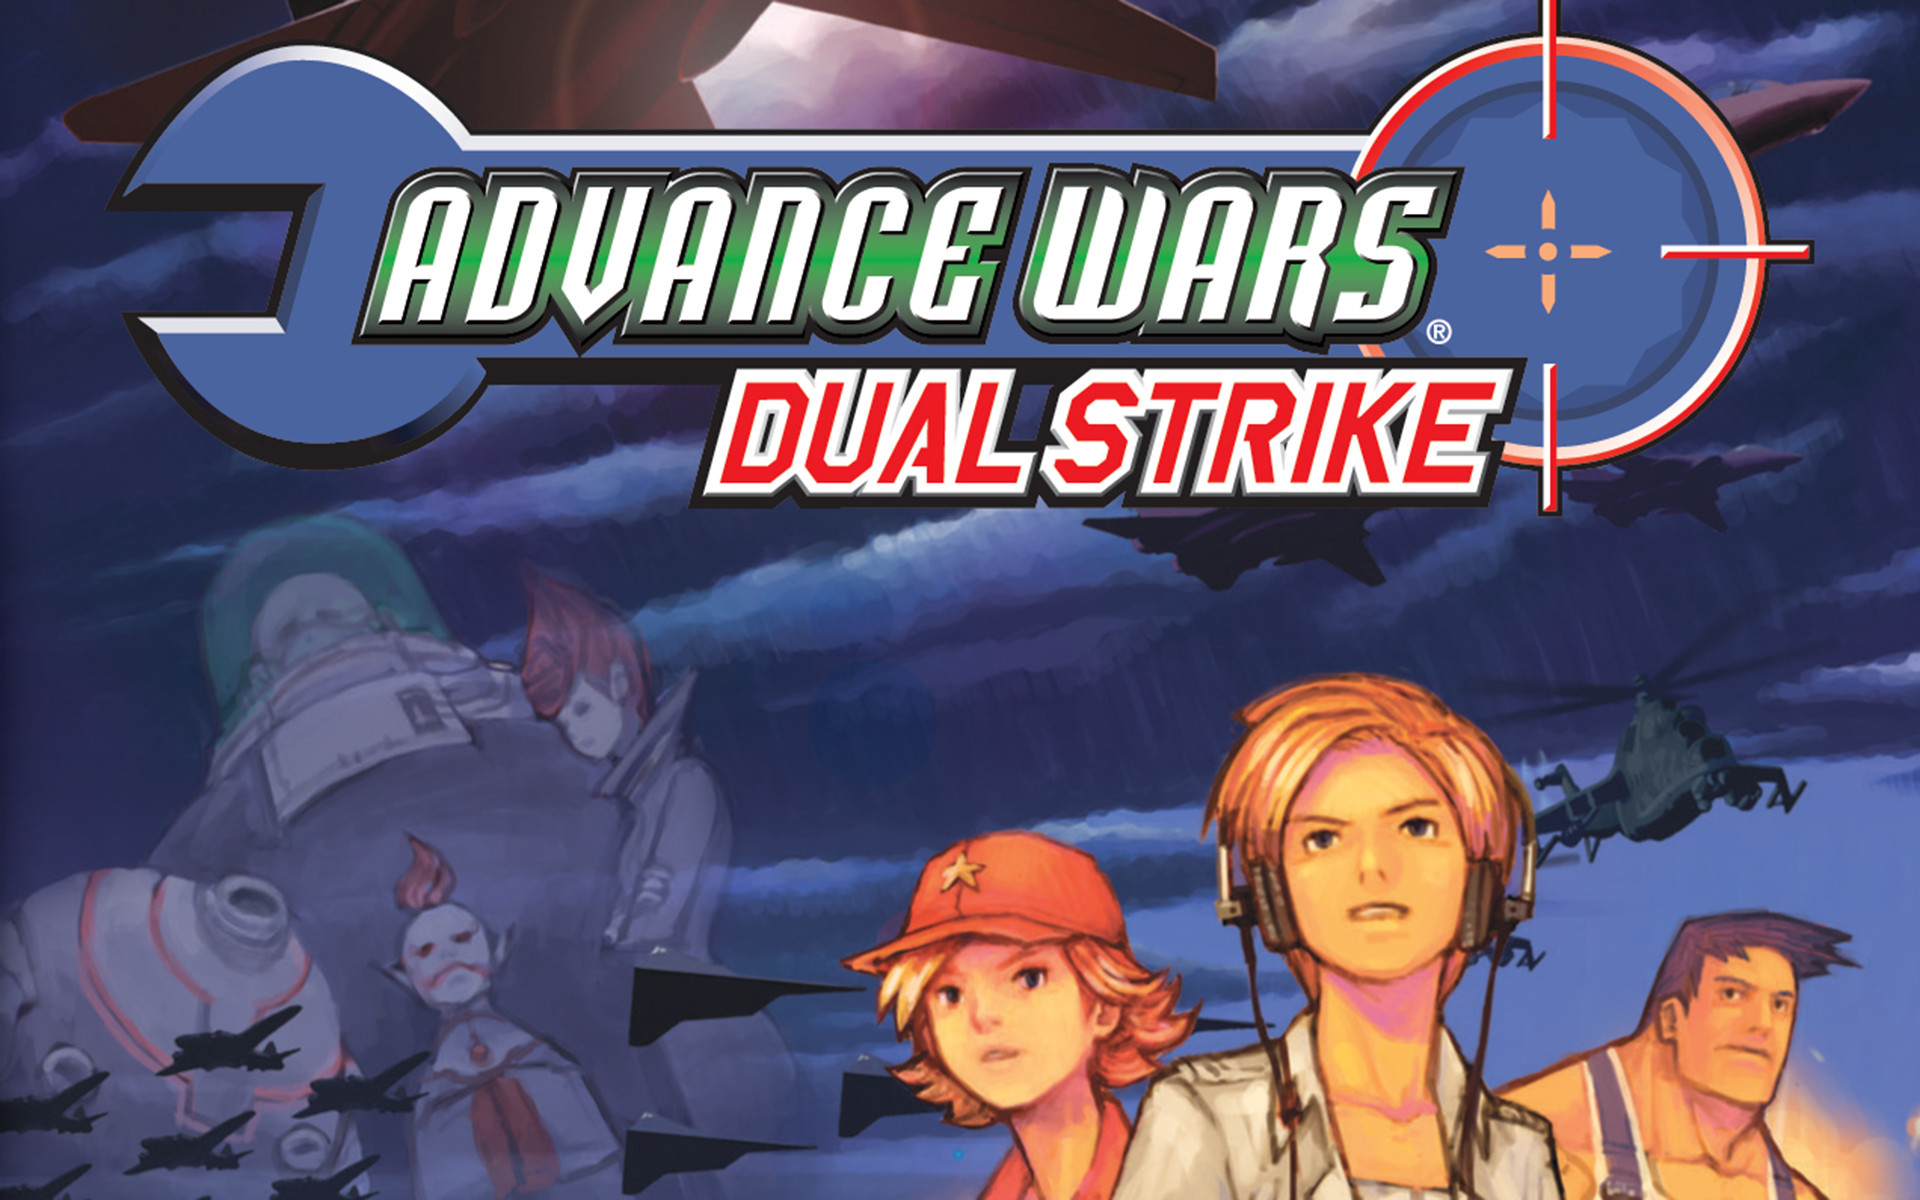 1920x1200 Top Images for Advance Wars Dual Strike Wallpaper on picsunday.com.  01/04/2019 to 04:49